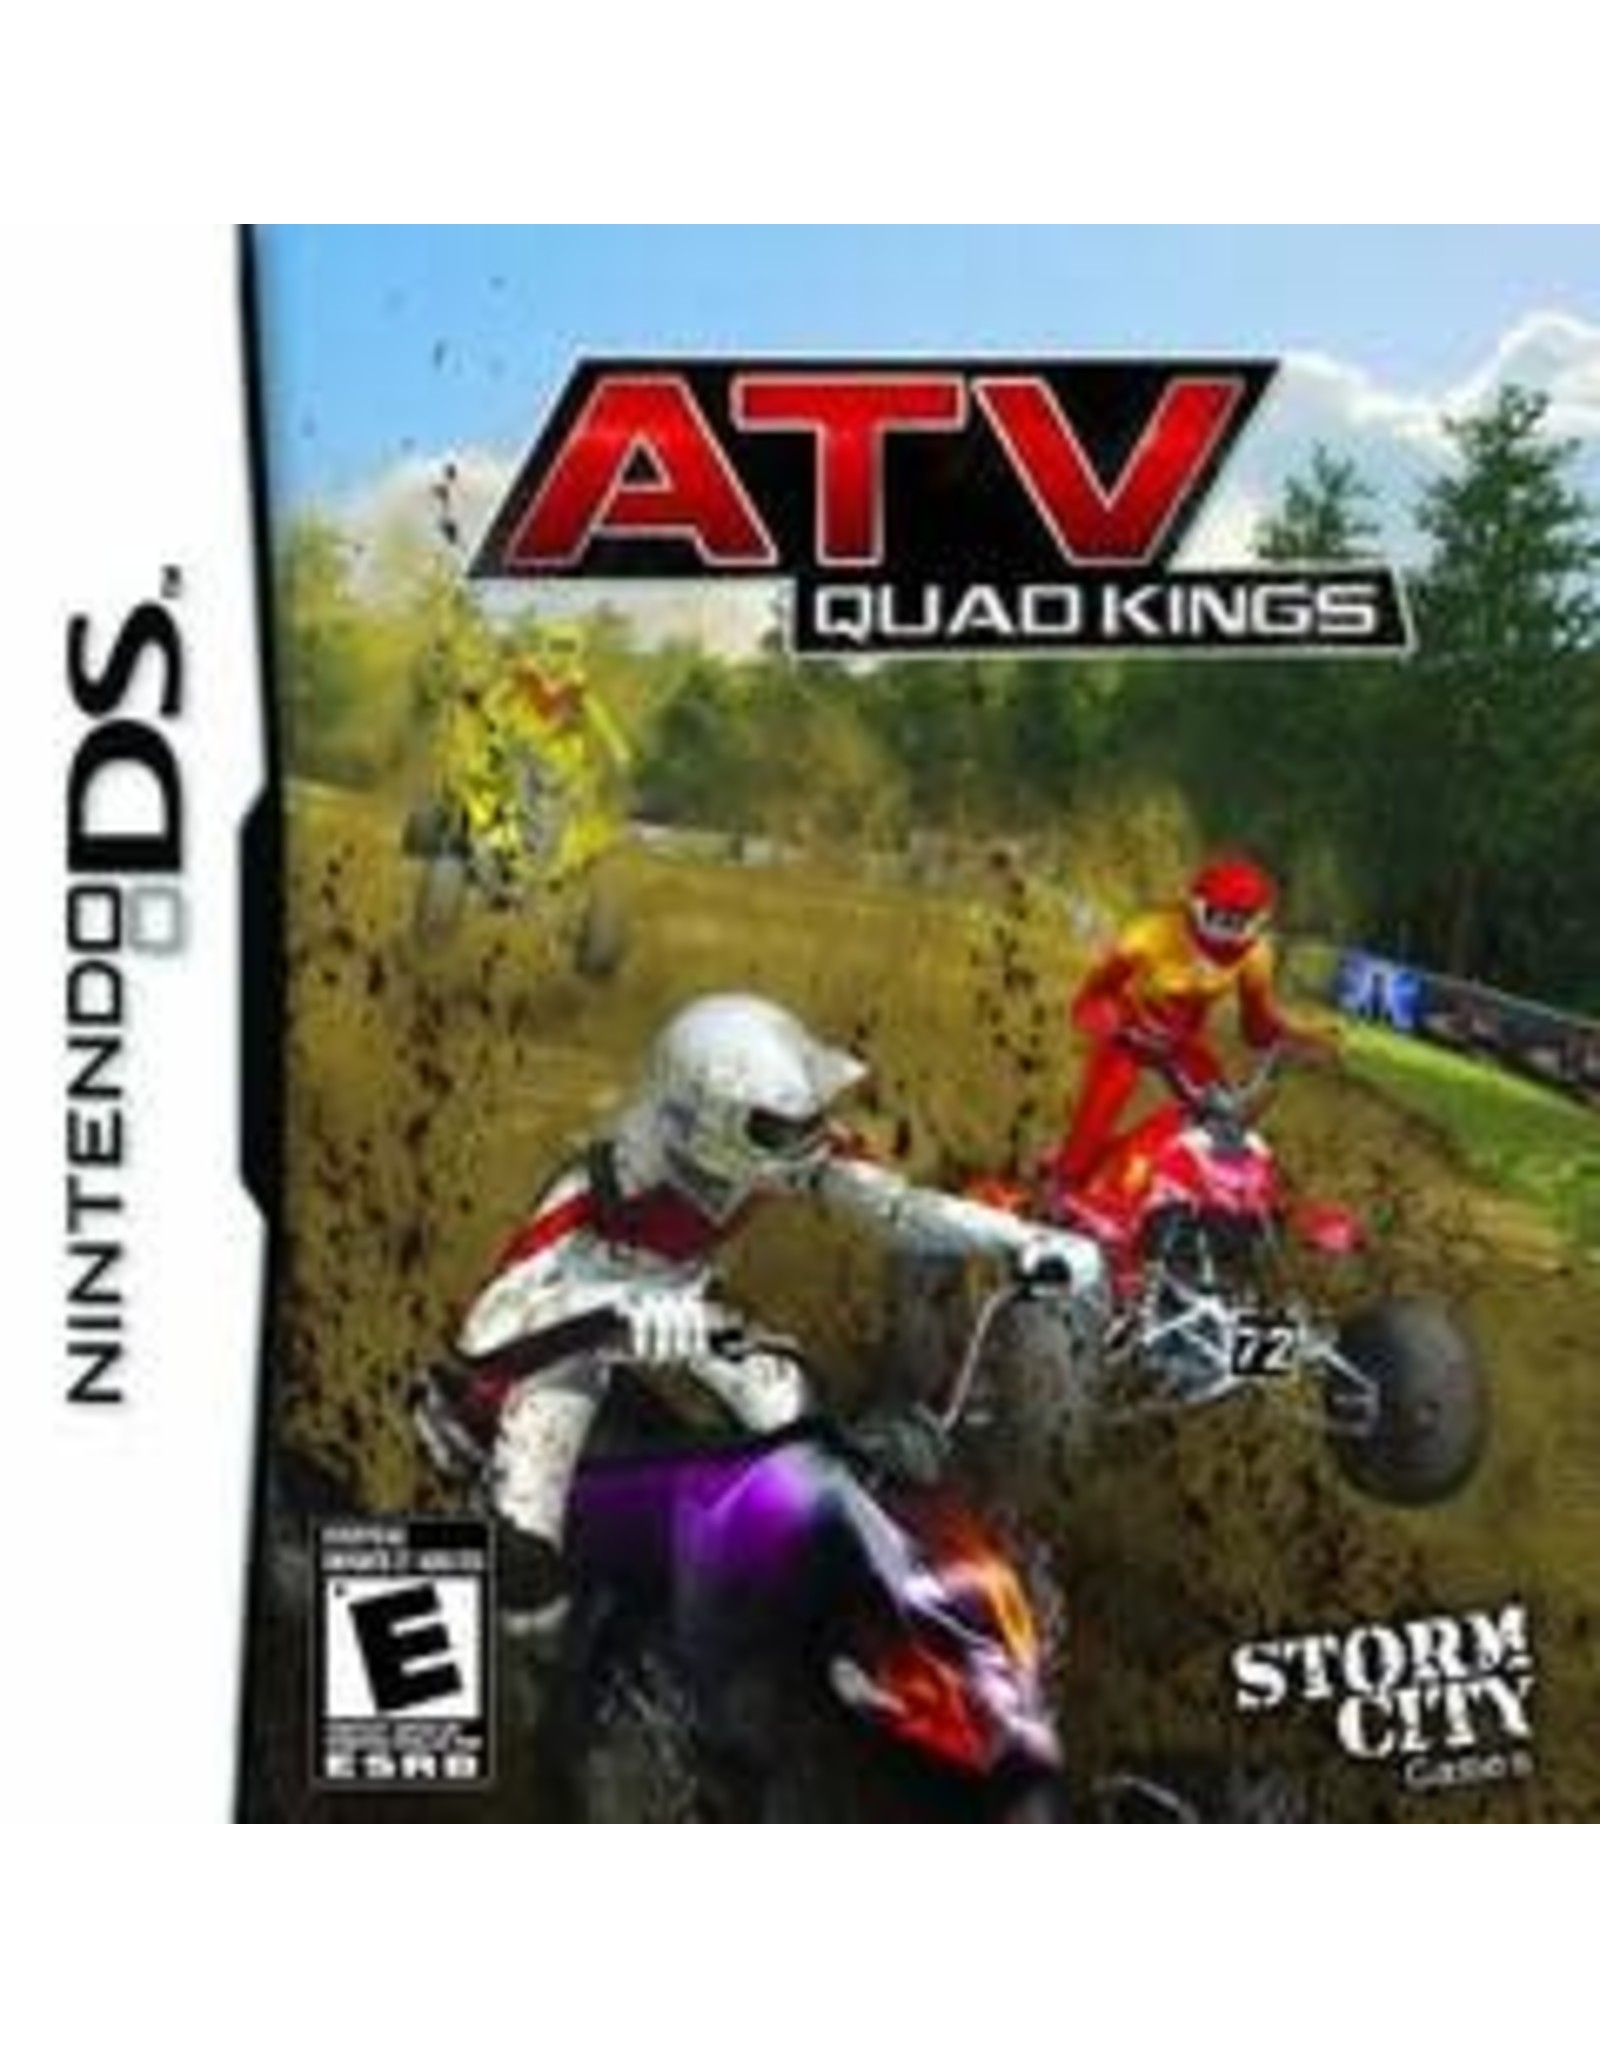 Nintendo DS ATV Quad Kings (CiB)